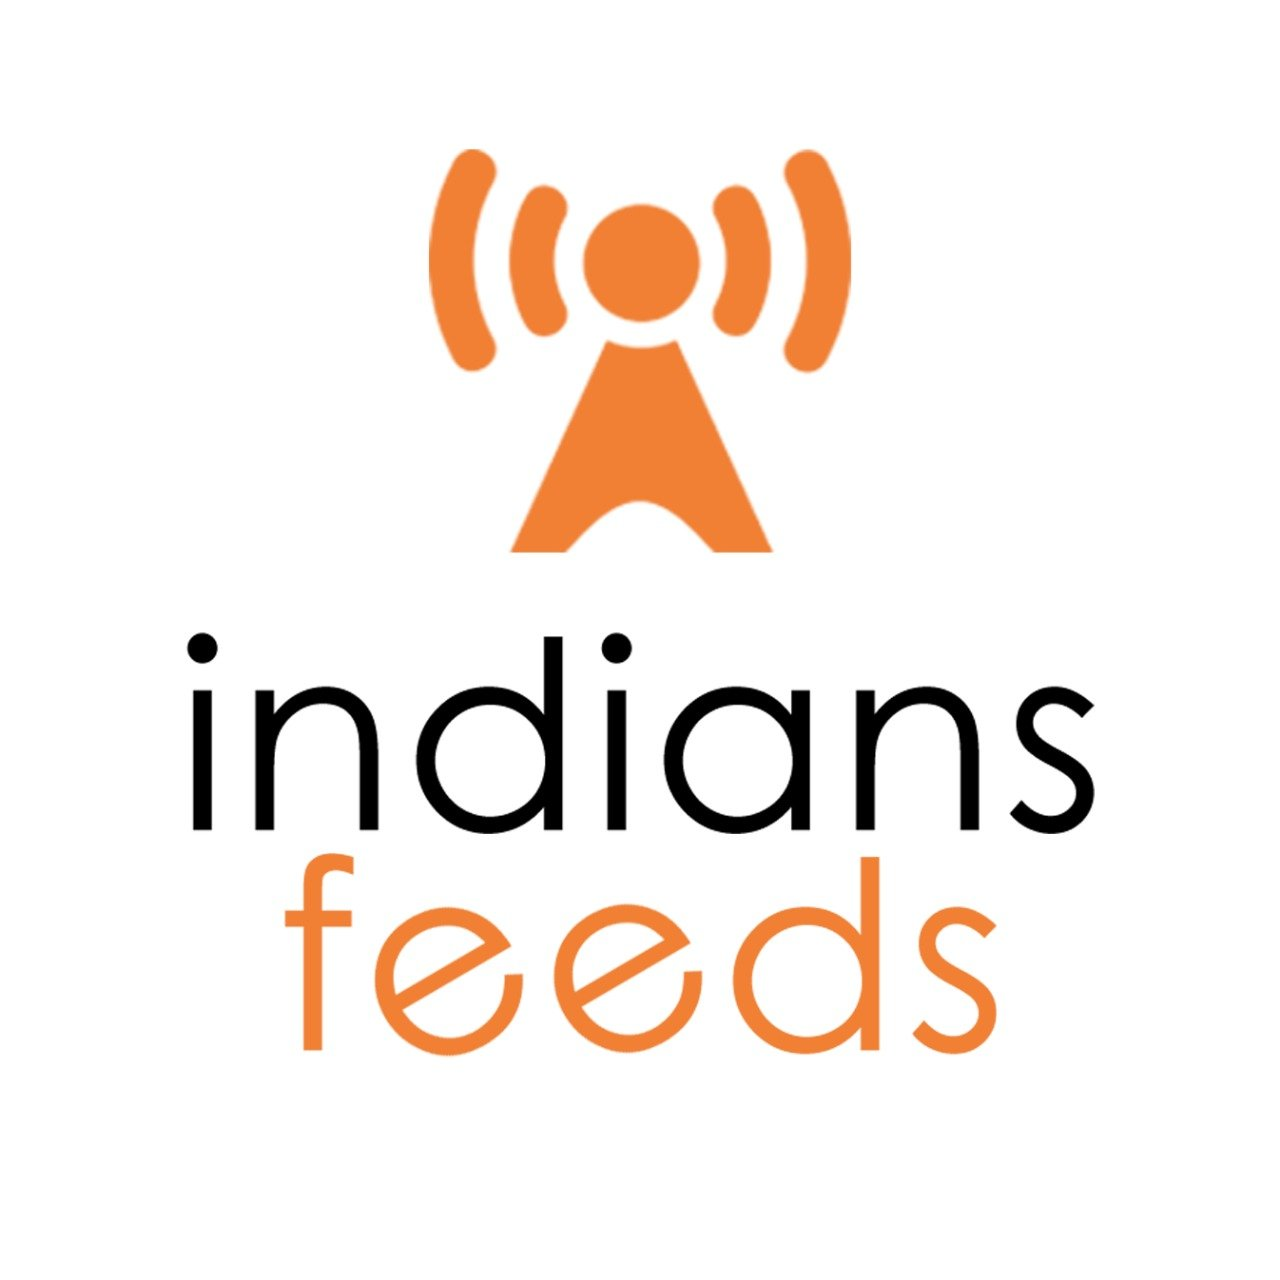 Indians feeds